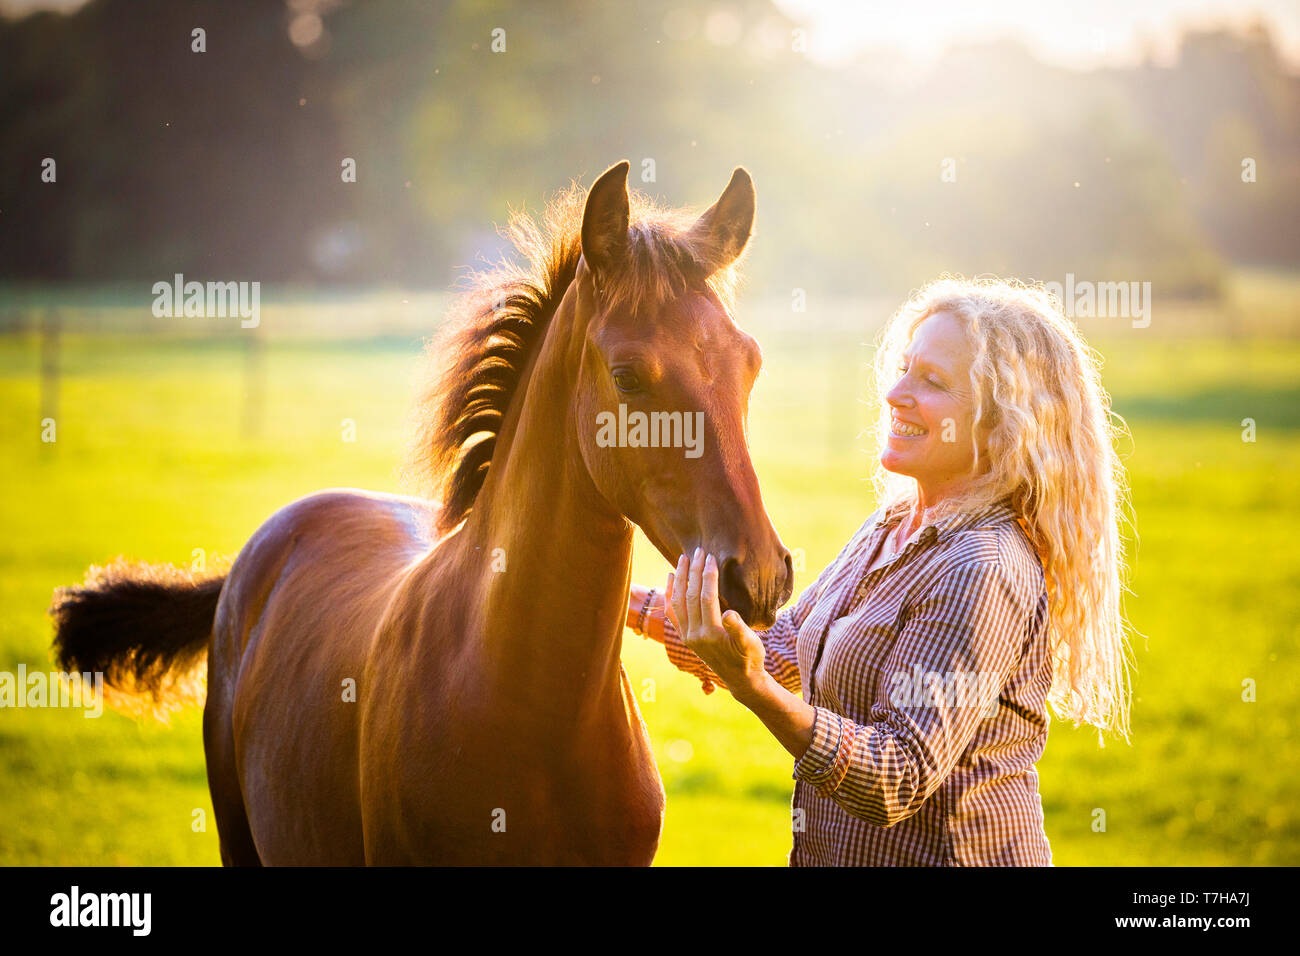 Iberian Sport Horse. Andrea Jaenisch fondling a bay foal on a pasture. Germany Stock Photo